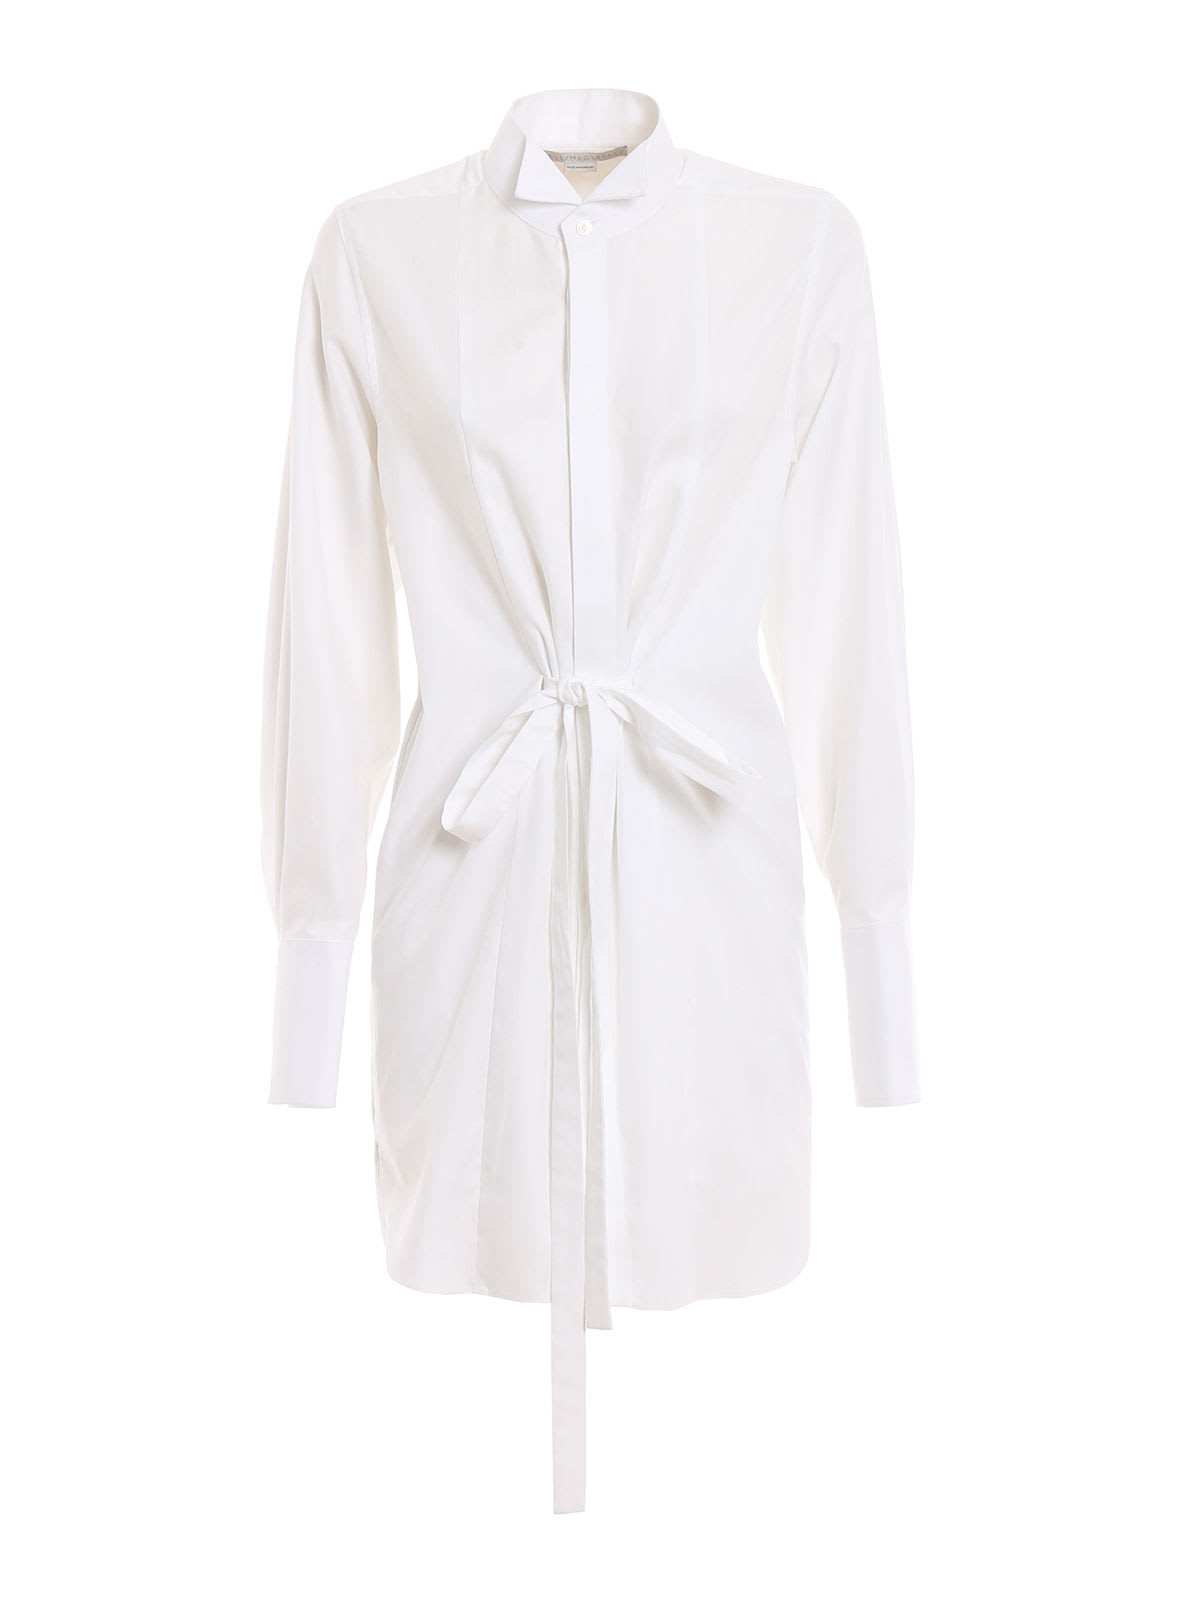 Stella McCartney Belted Shirt Dress